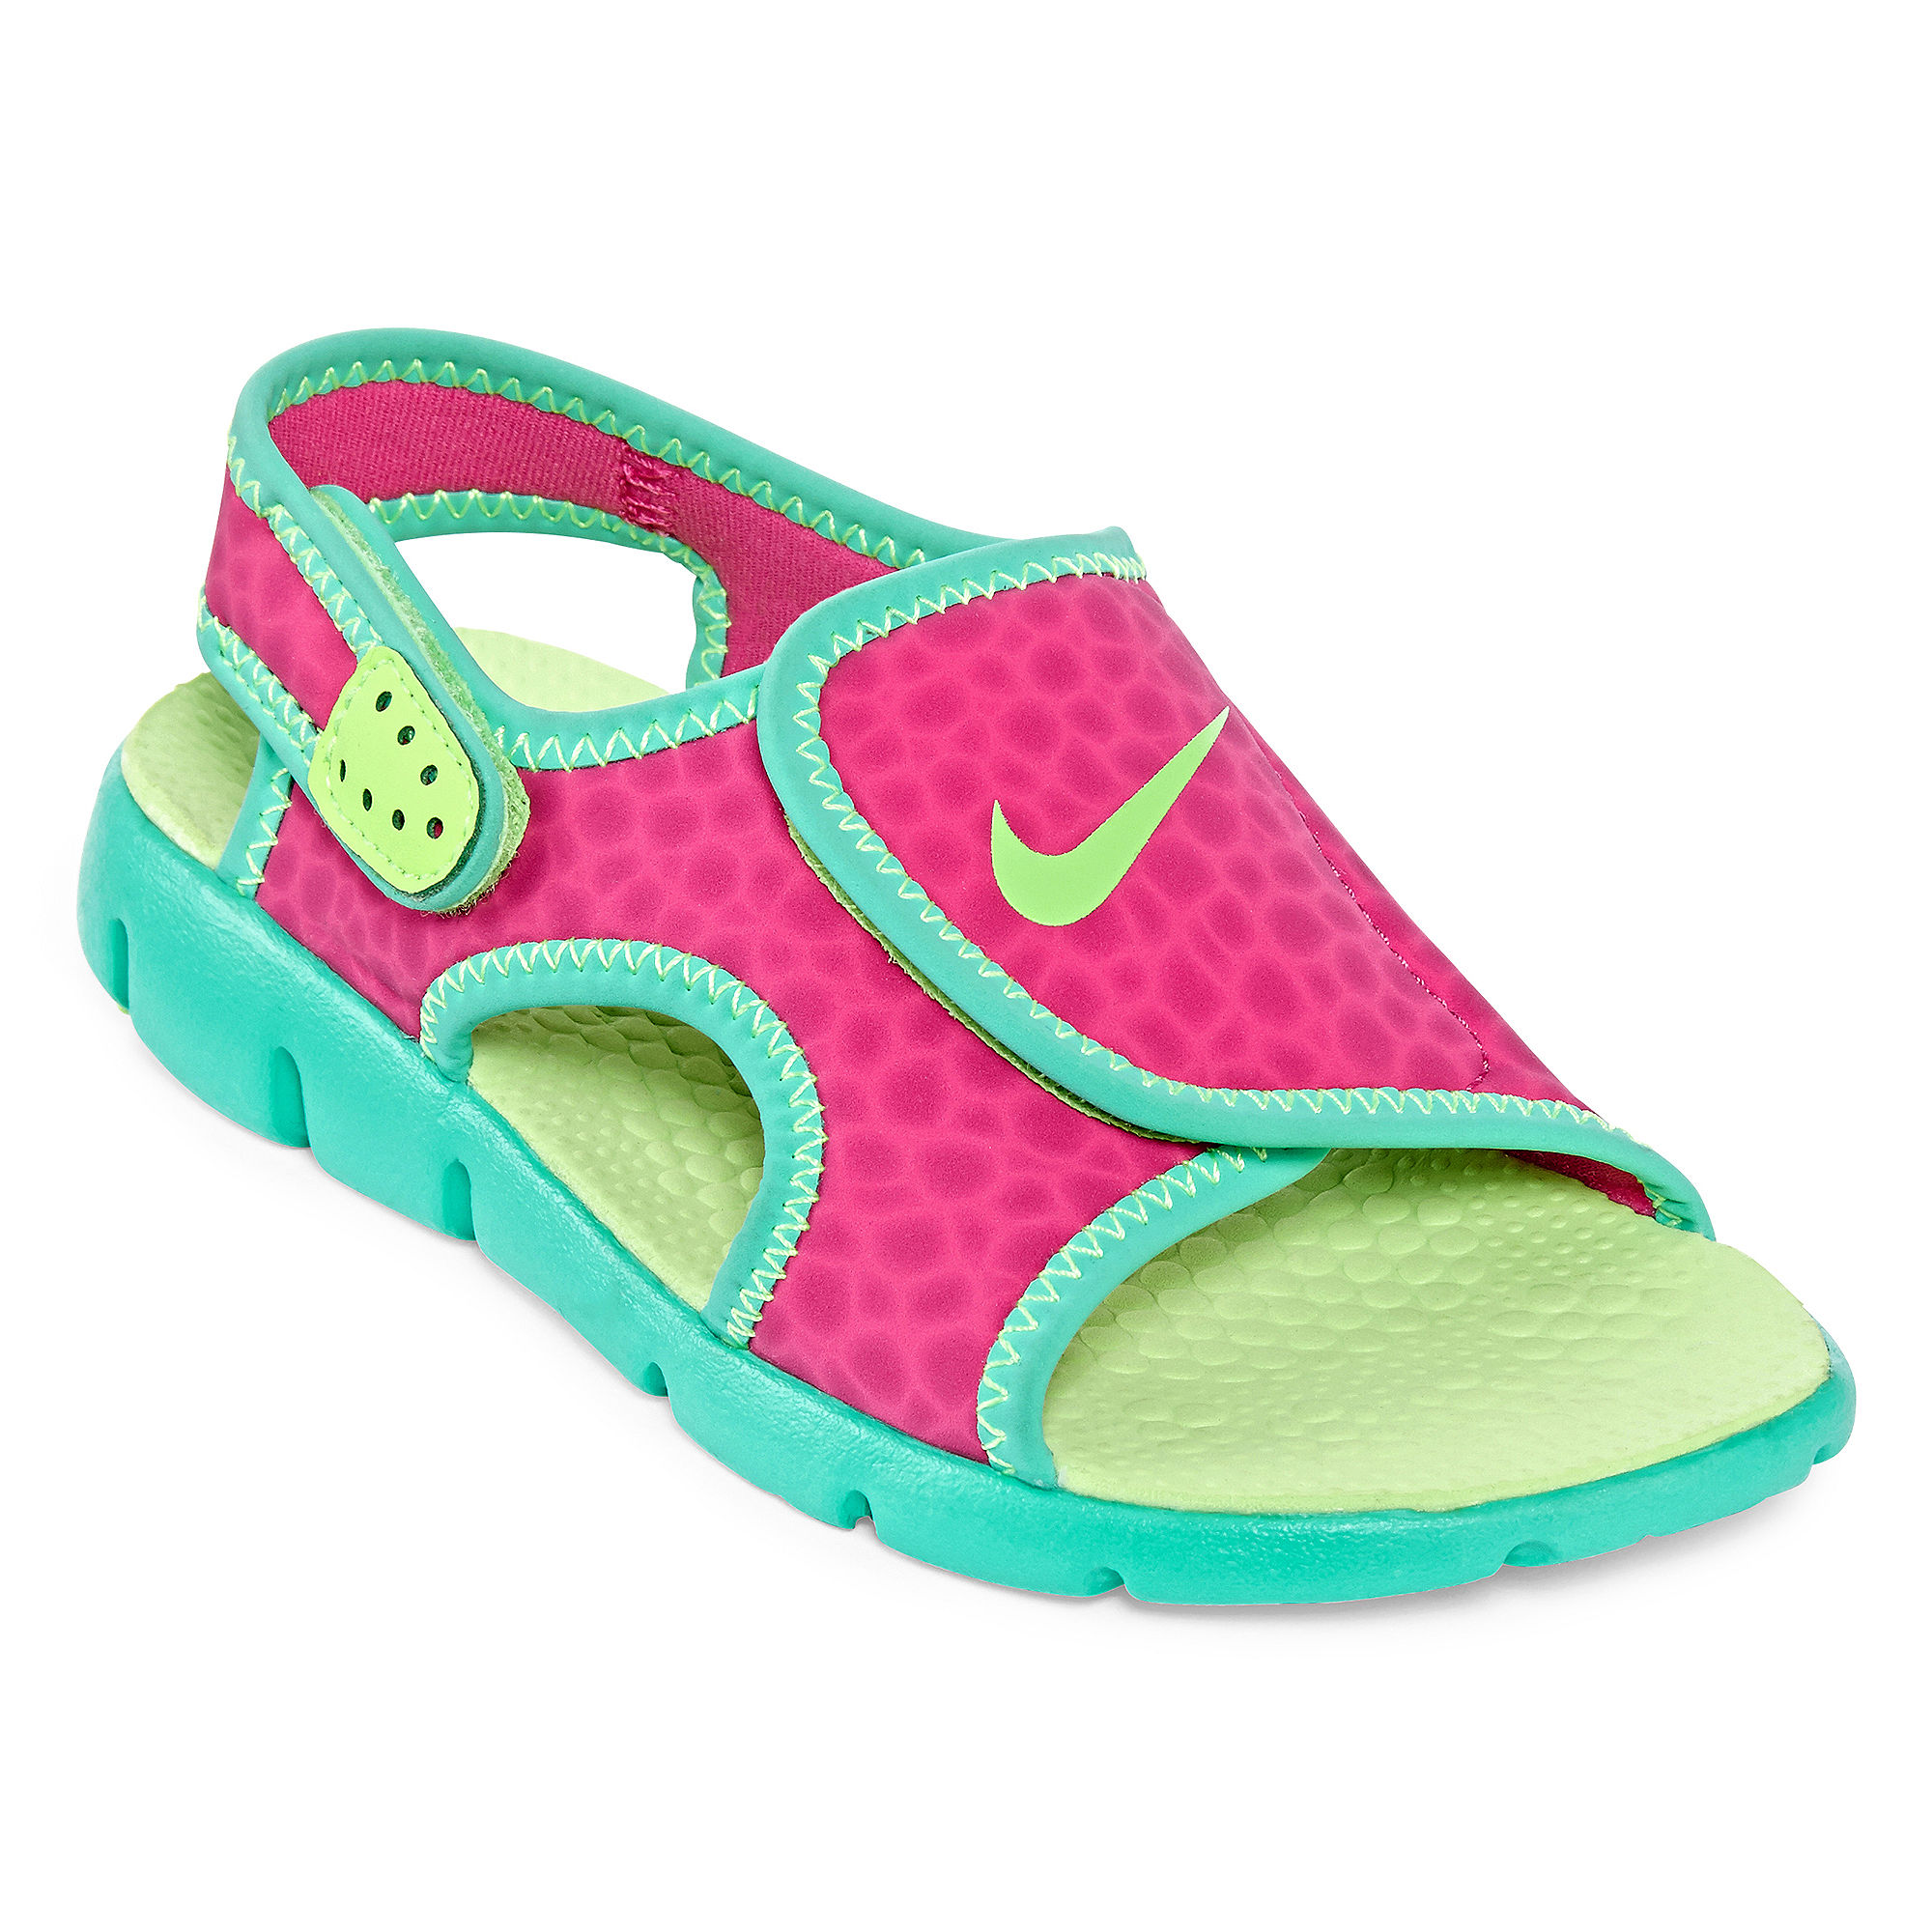 e3e75bdbfaec low cost upc 685068727726 product image for nike sunray adjustable girls  sandals little kids upcitemdb.